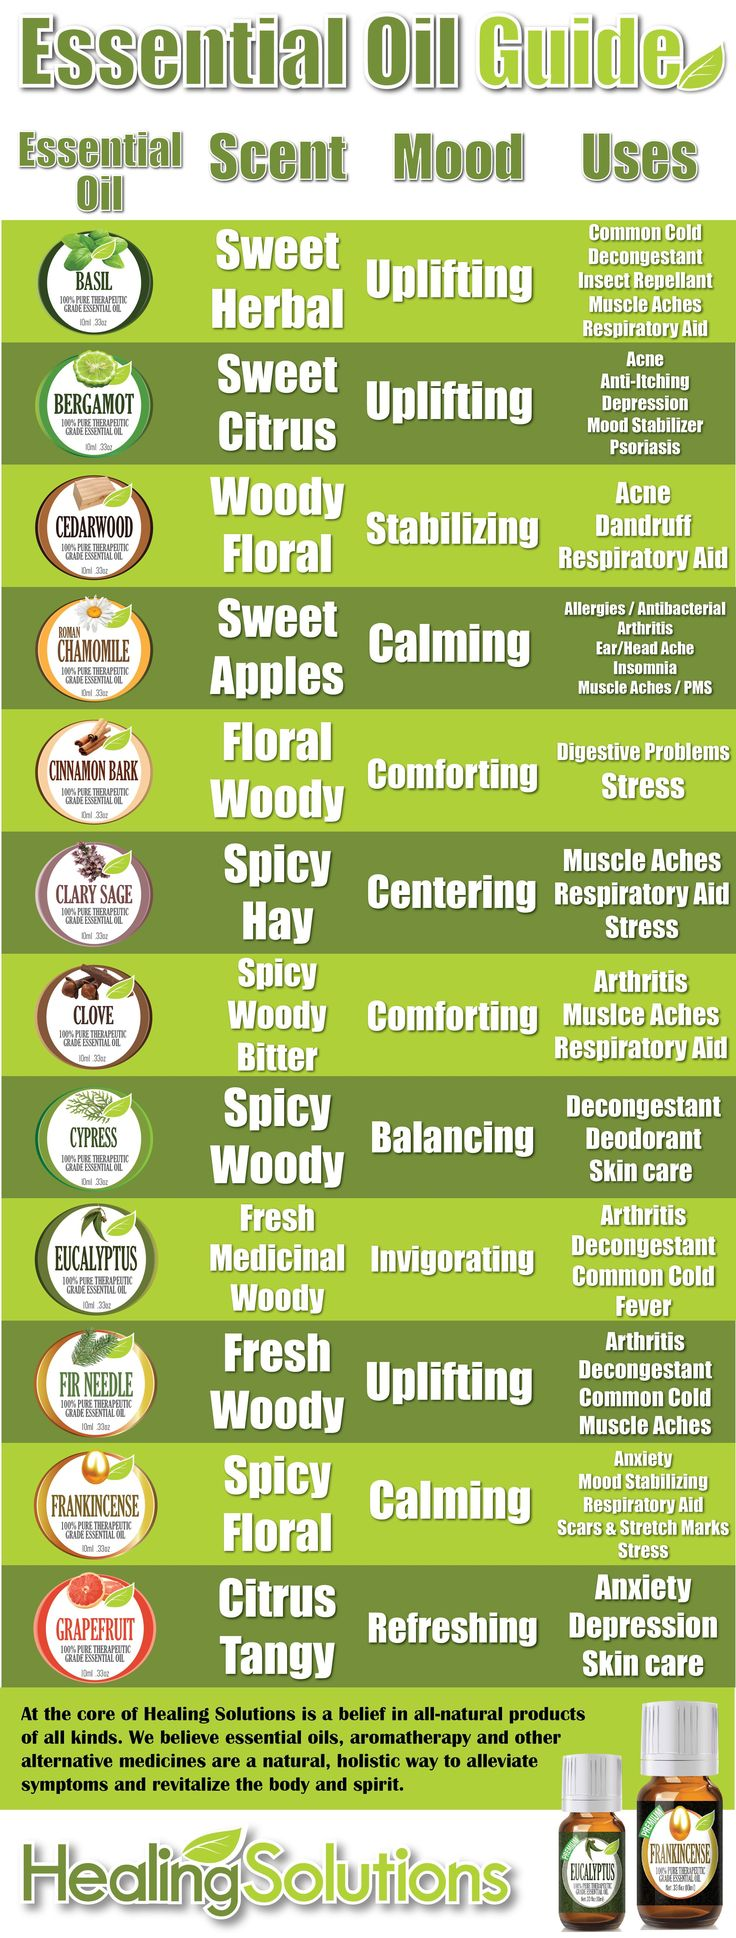 How do you use essential oils? This is part one of the Healing Solutions two part guide to using 25 of our most popular essential oils! Learn more about Healing Solutions and our oils on our website: http://healingsolutions.com/  *Not for internal use